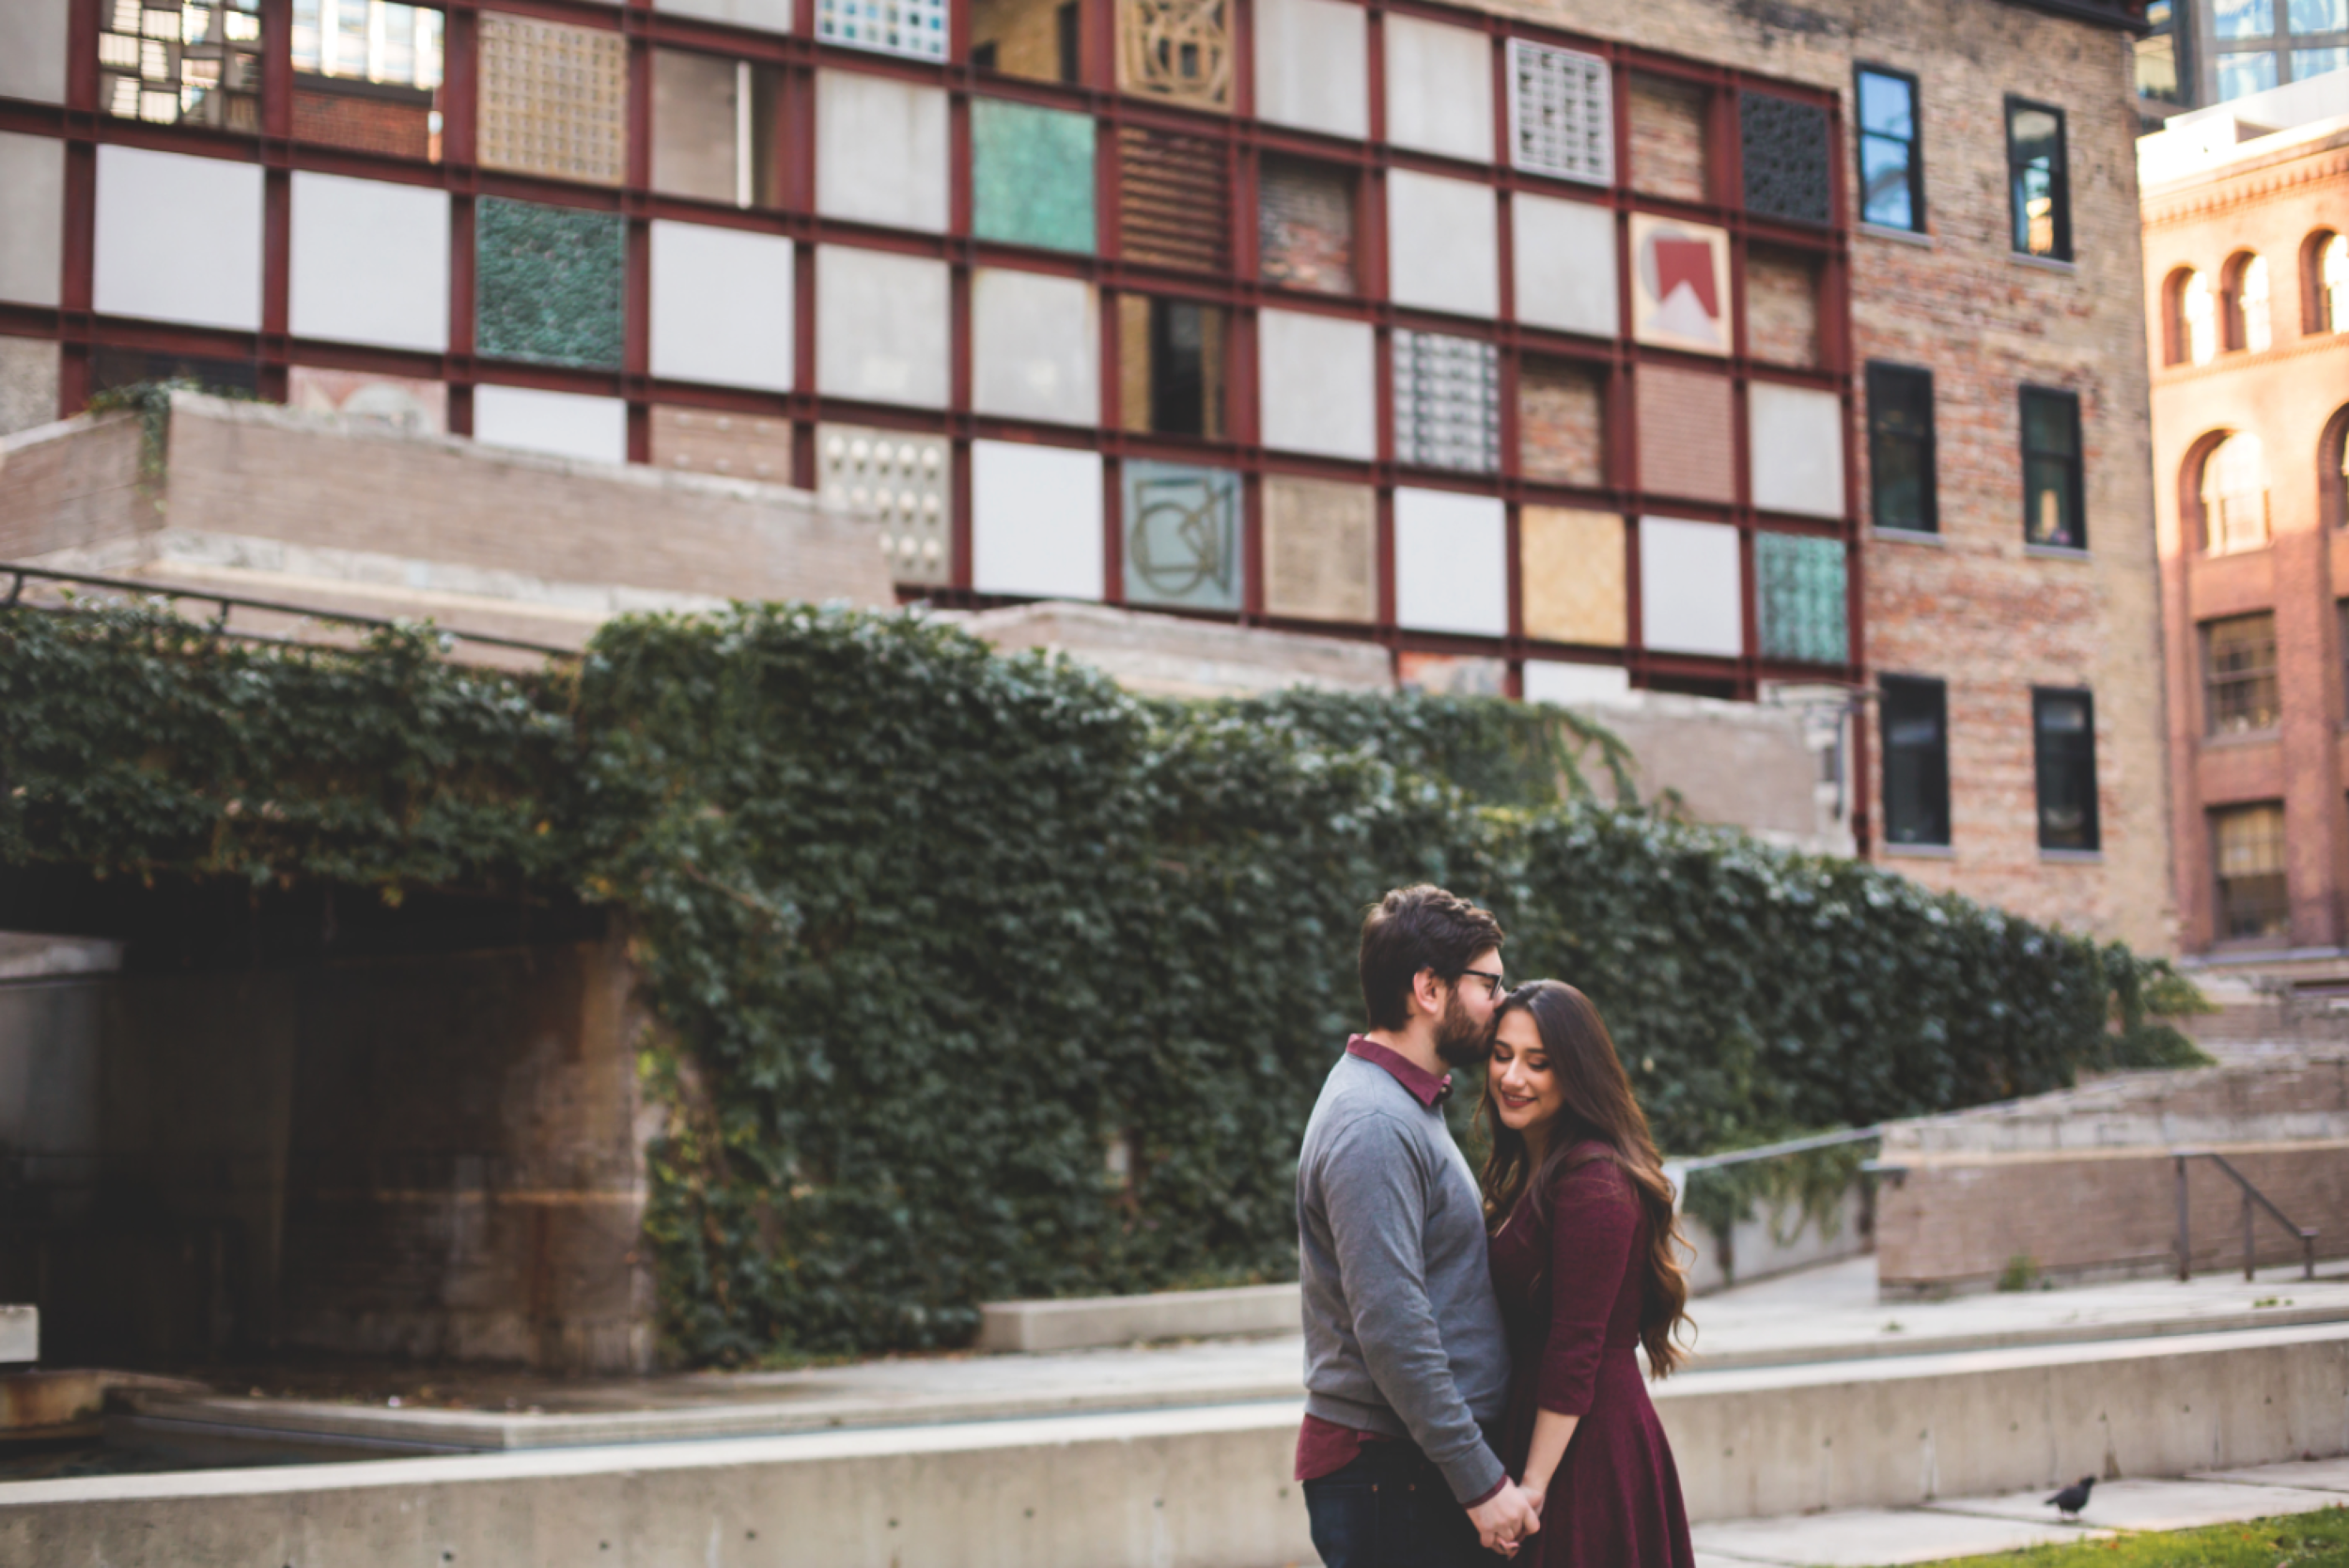 Engagement-Session-Hamilton-Burlington-Oakville-Niagara-Toronto-Wedding-Photographer-Engaged-Photography-Urban-Engaged-Downtown-Golden-Hour-Moments-by-Lauren-Photo-Image-14.png